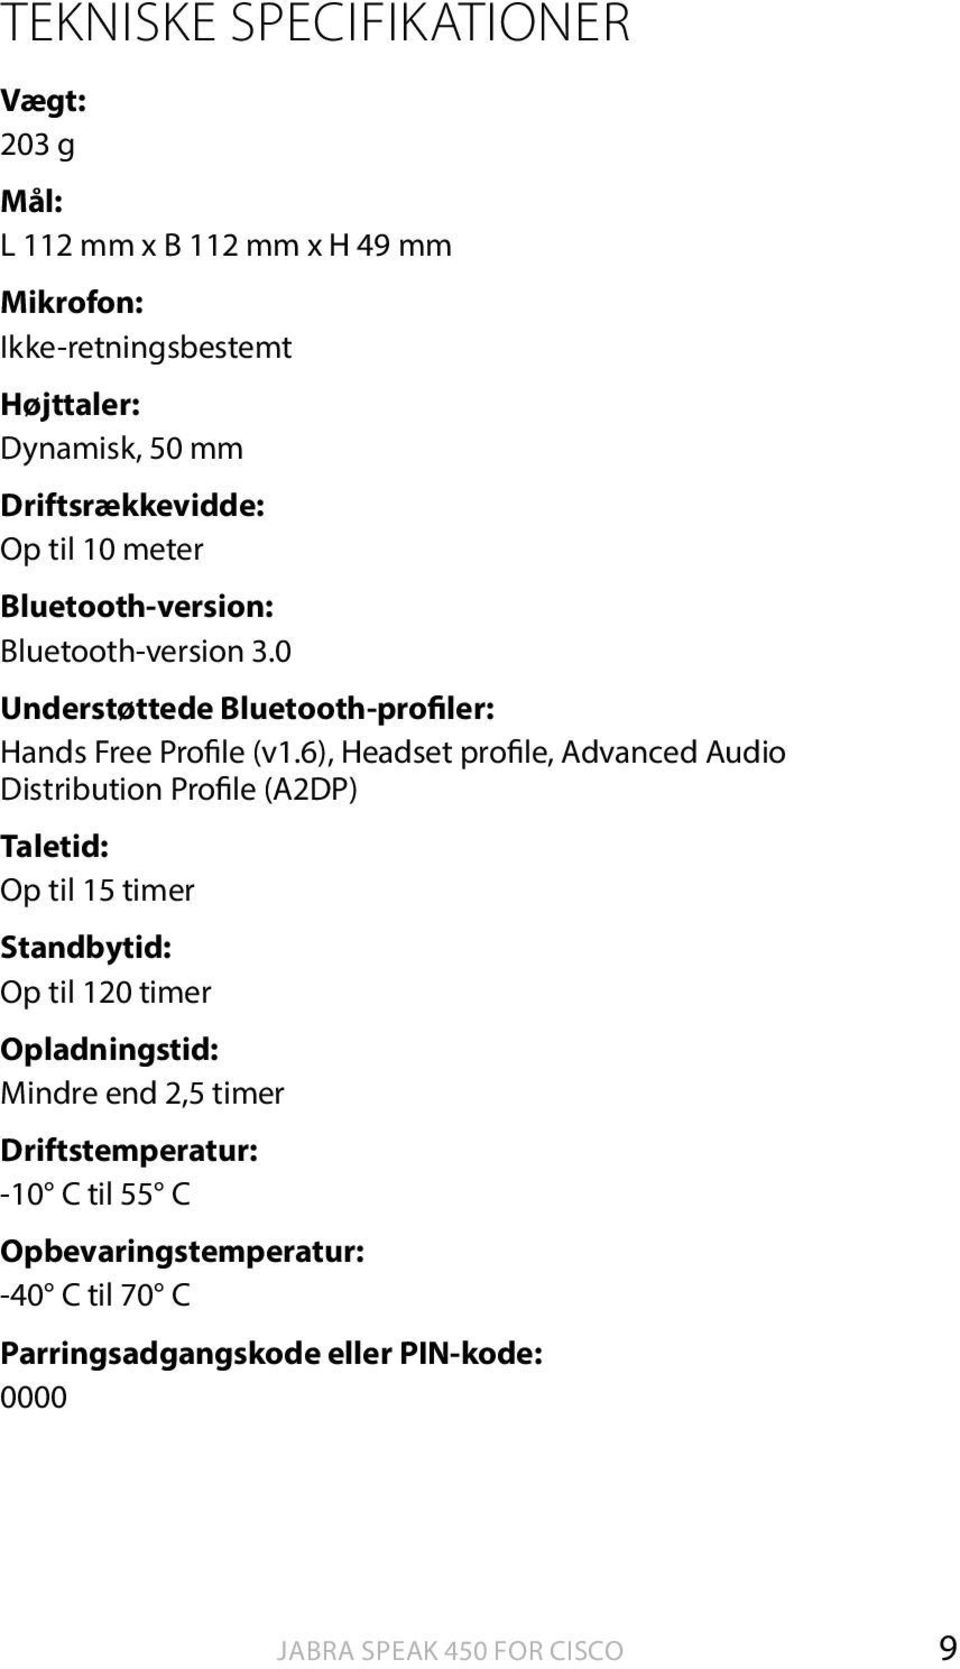 6), Headset profile, Advanced Audio Distribution Profile (A2DP) Taletid: Op til 15 timer Standbytid: Op til 120 timer Opladningstid: